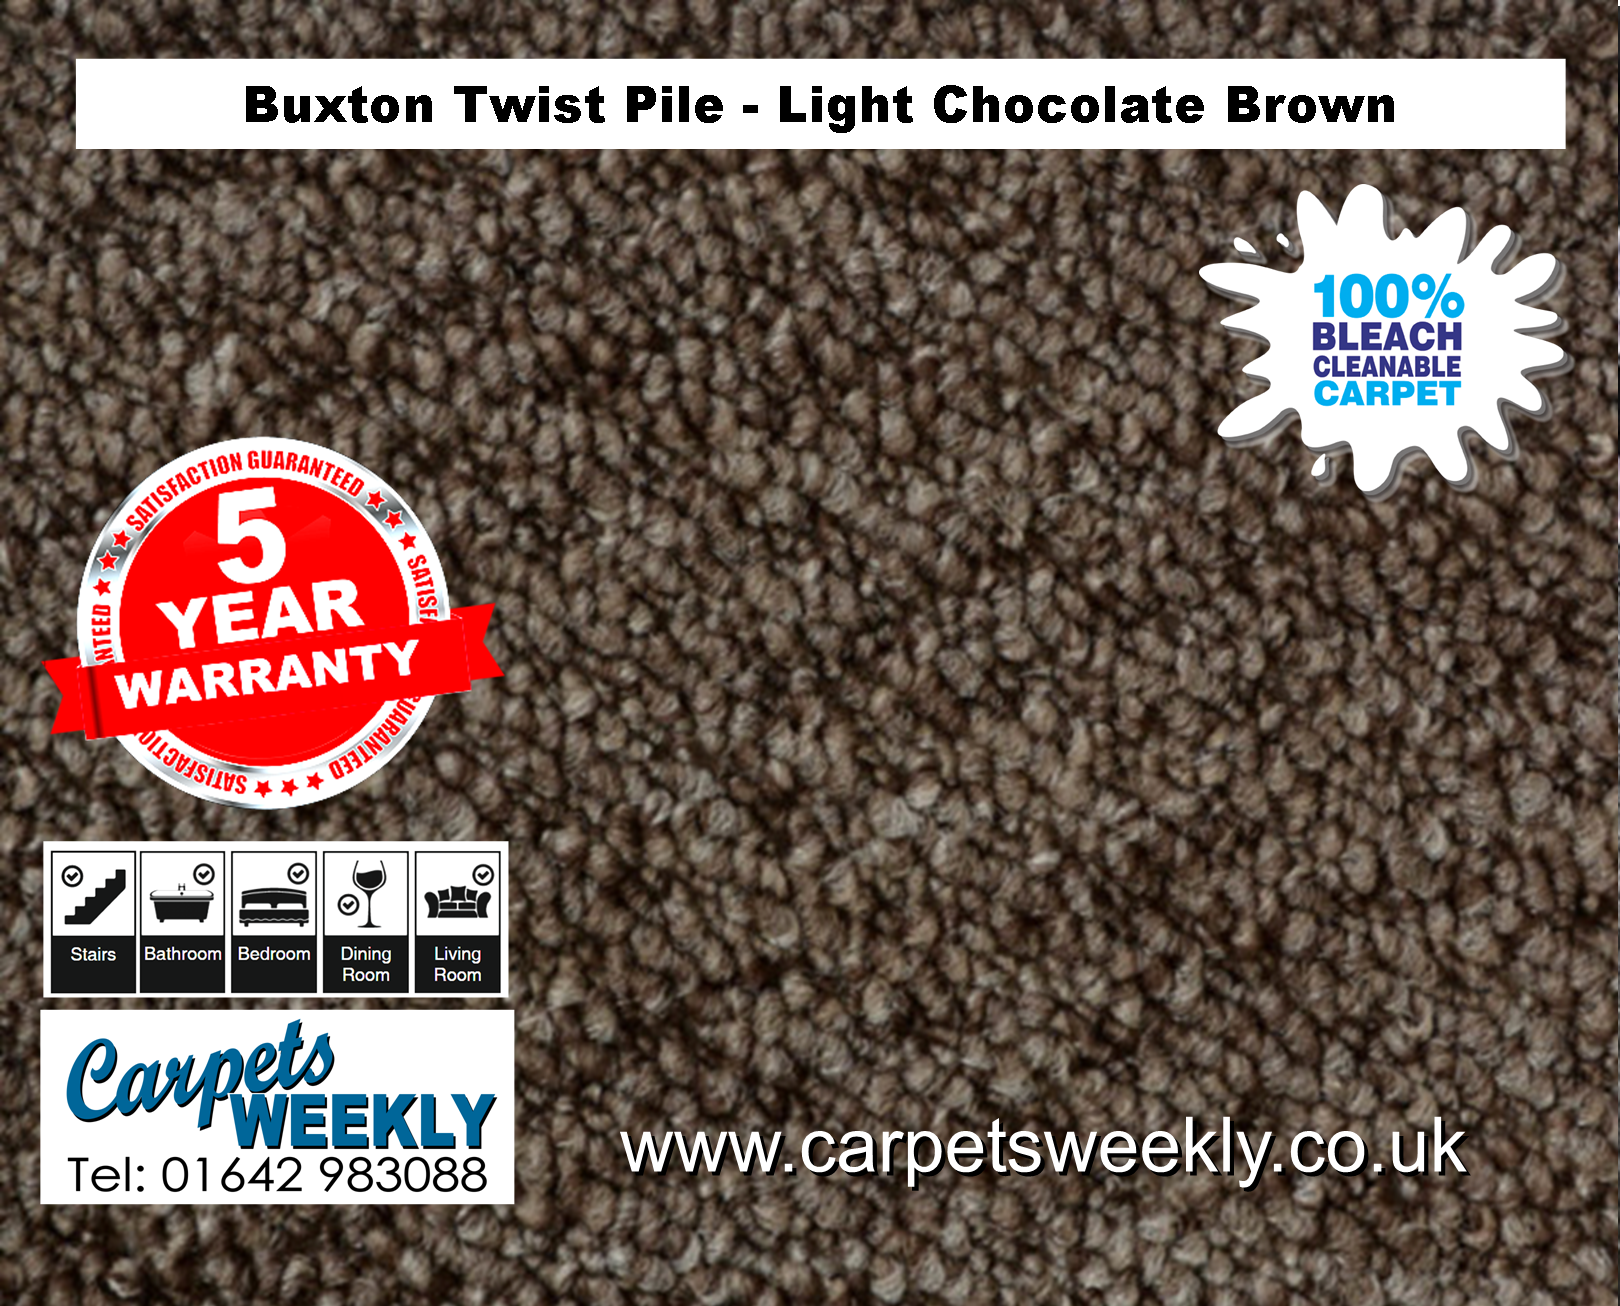 Buxton Monet Twist Pile Carpet Light Chocolate Brown from Carpets Weekly